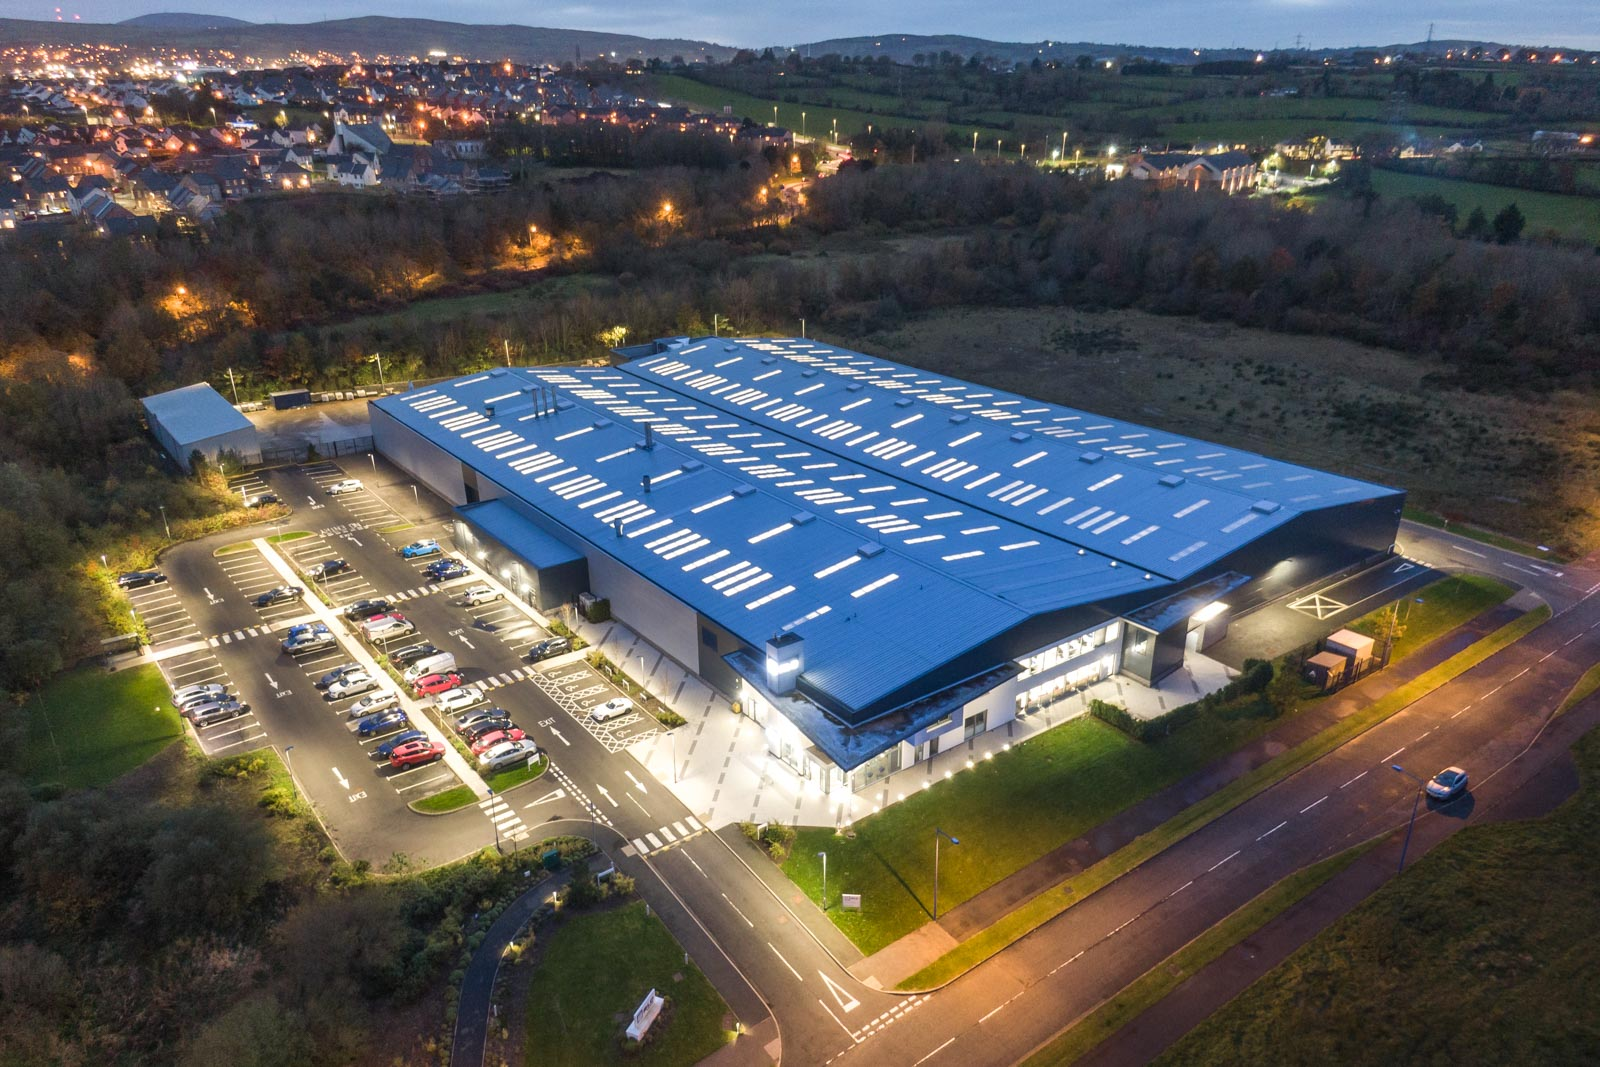 Aerial photograph of the RLC Group building in Newtownabbey by Bout Yeh drone photography and video production - image 0005